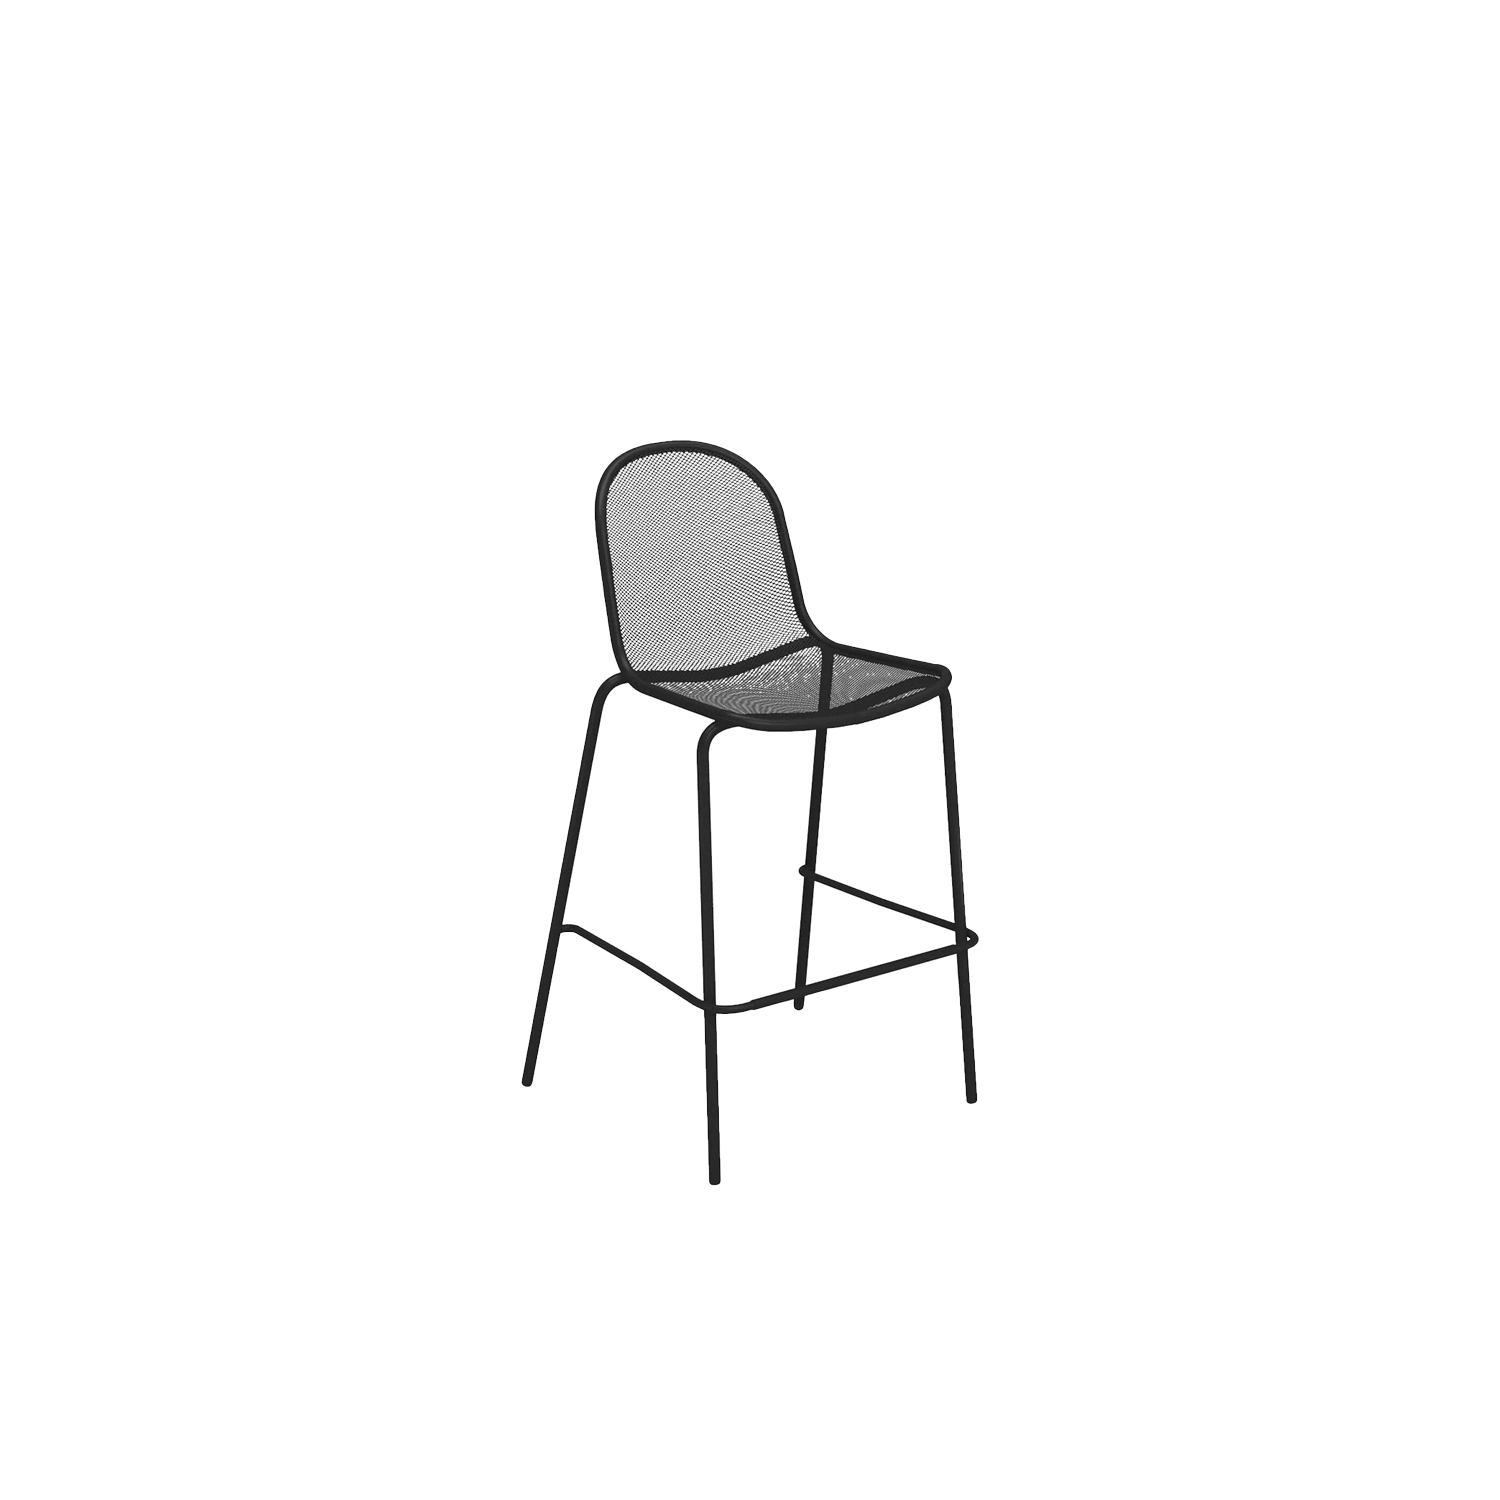 Nova Barstool - Set of 4 - The Nova collection is characterised by small dimensions for maximum comfort, with unmistakable and original lines. The unusual armrest gives style and character to the armchair, bringing a bright note to a wide range of settings. The collection is completed with two square dining tables, whose clean lines enhance the unique design of the seats.  | Matter of Stuff